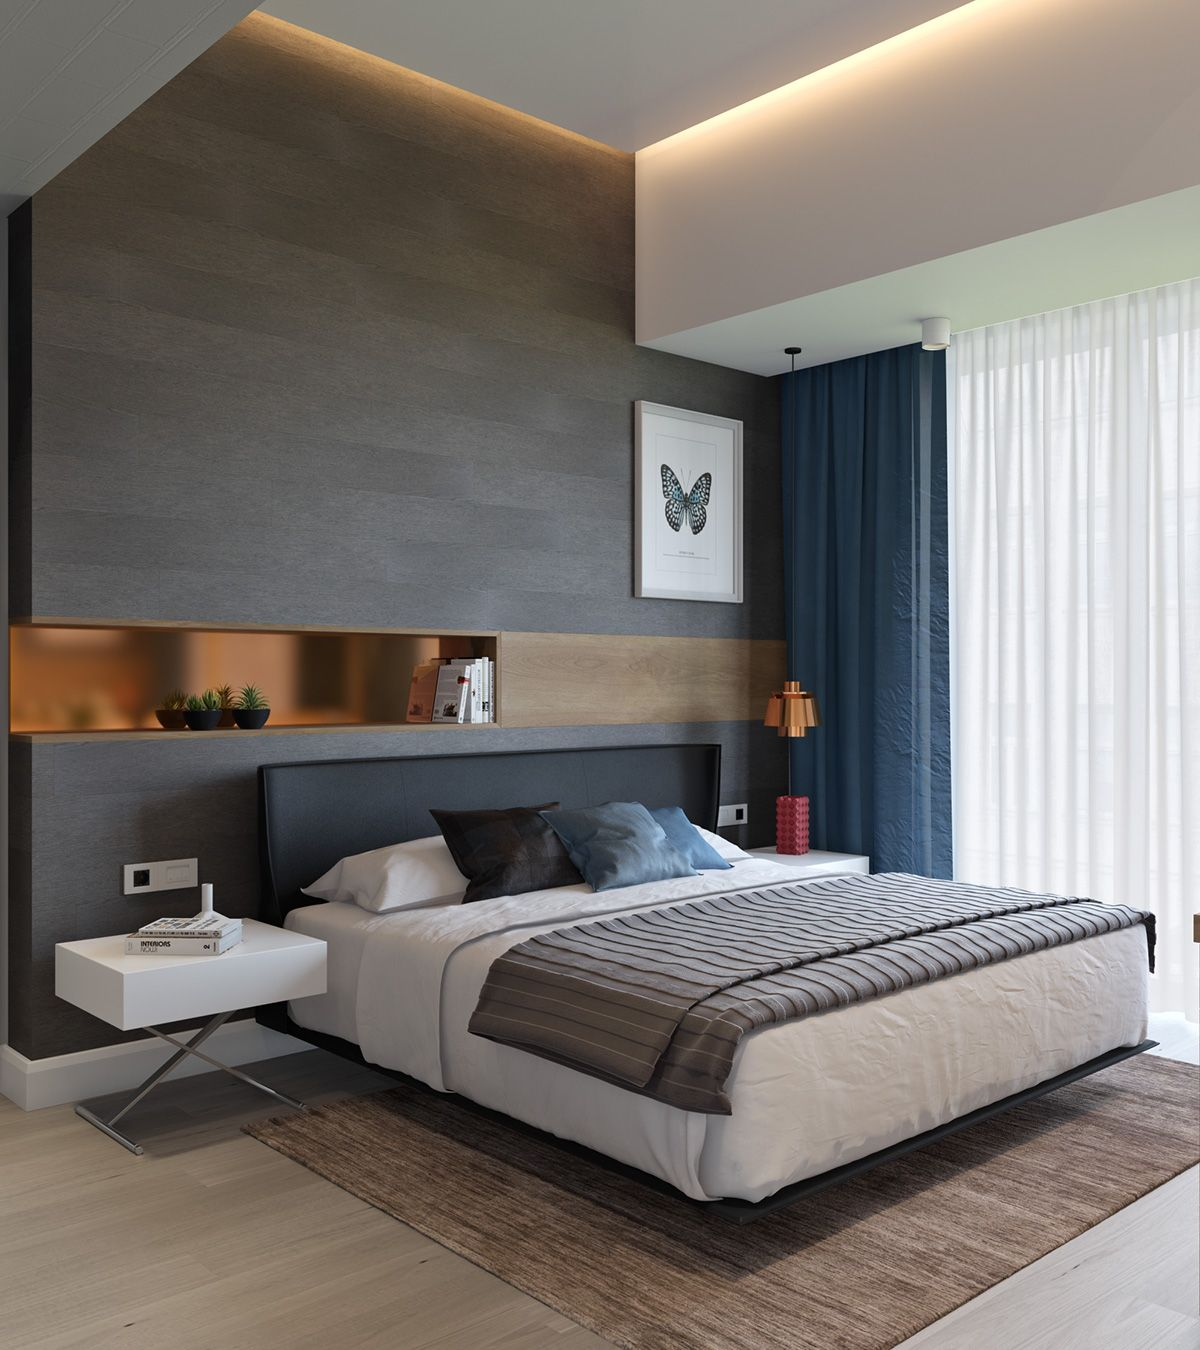 Latest Furniture Design For Bedroom 20 Very Cool Modern Beds For Your Room Furniture Bedroom Ideas